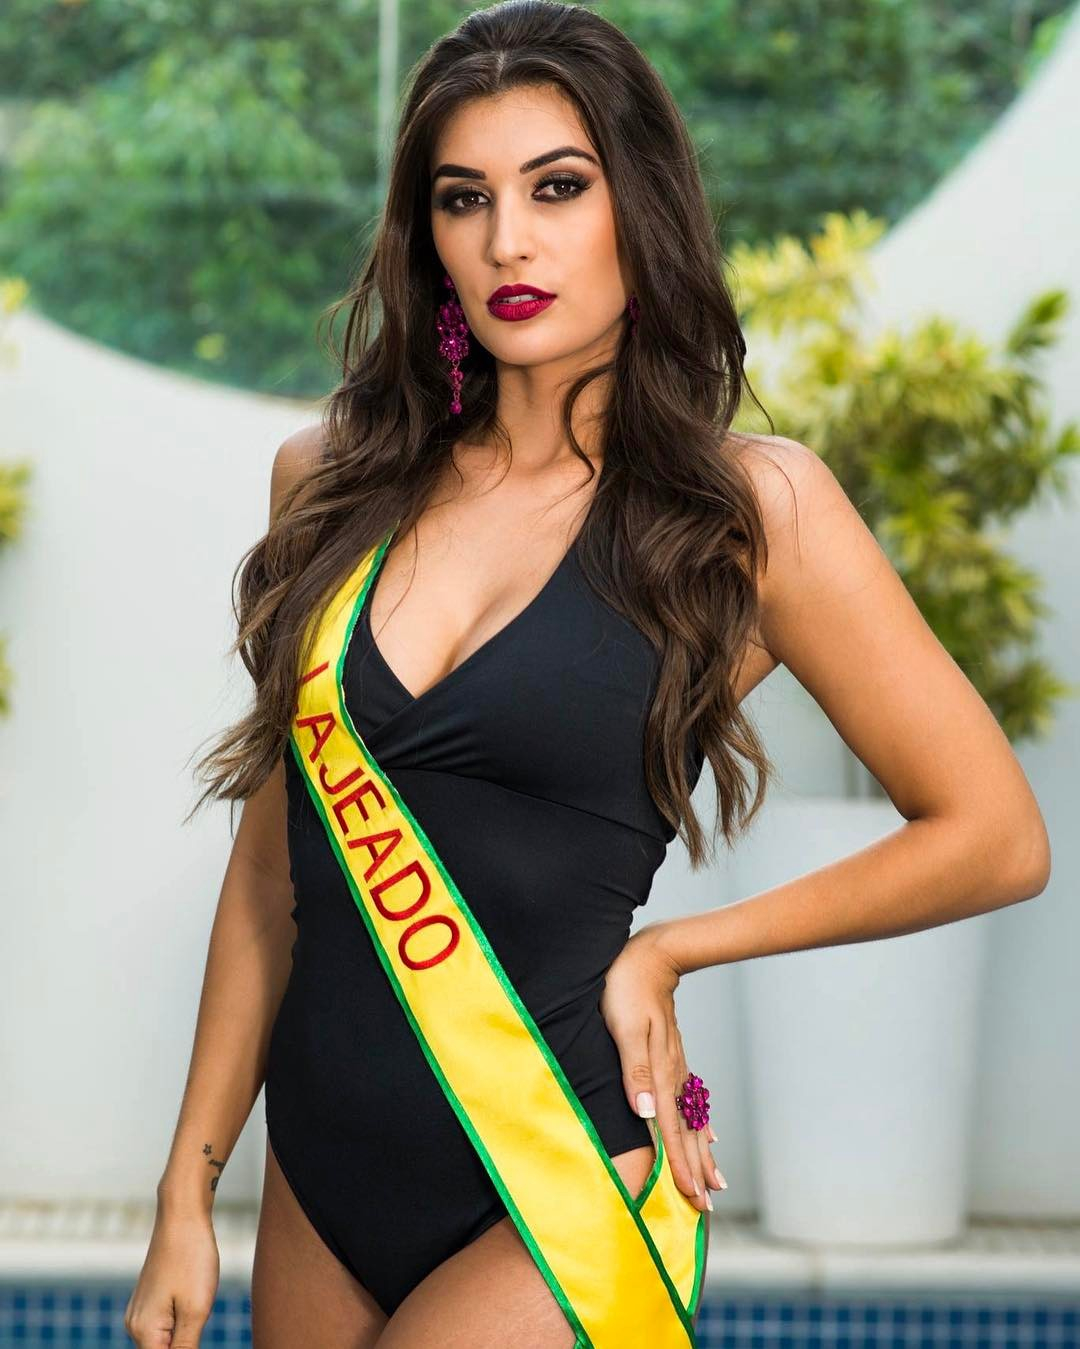 candidatas a miss grand brasil 2019. final: 28 feb. - Página 2 Mzb2kmbz